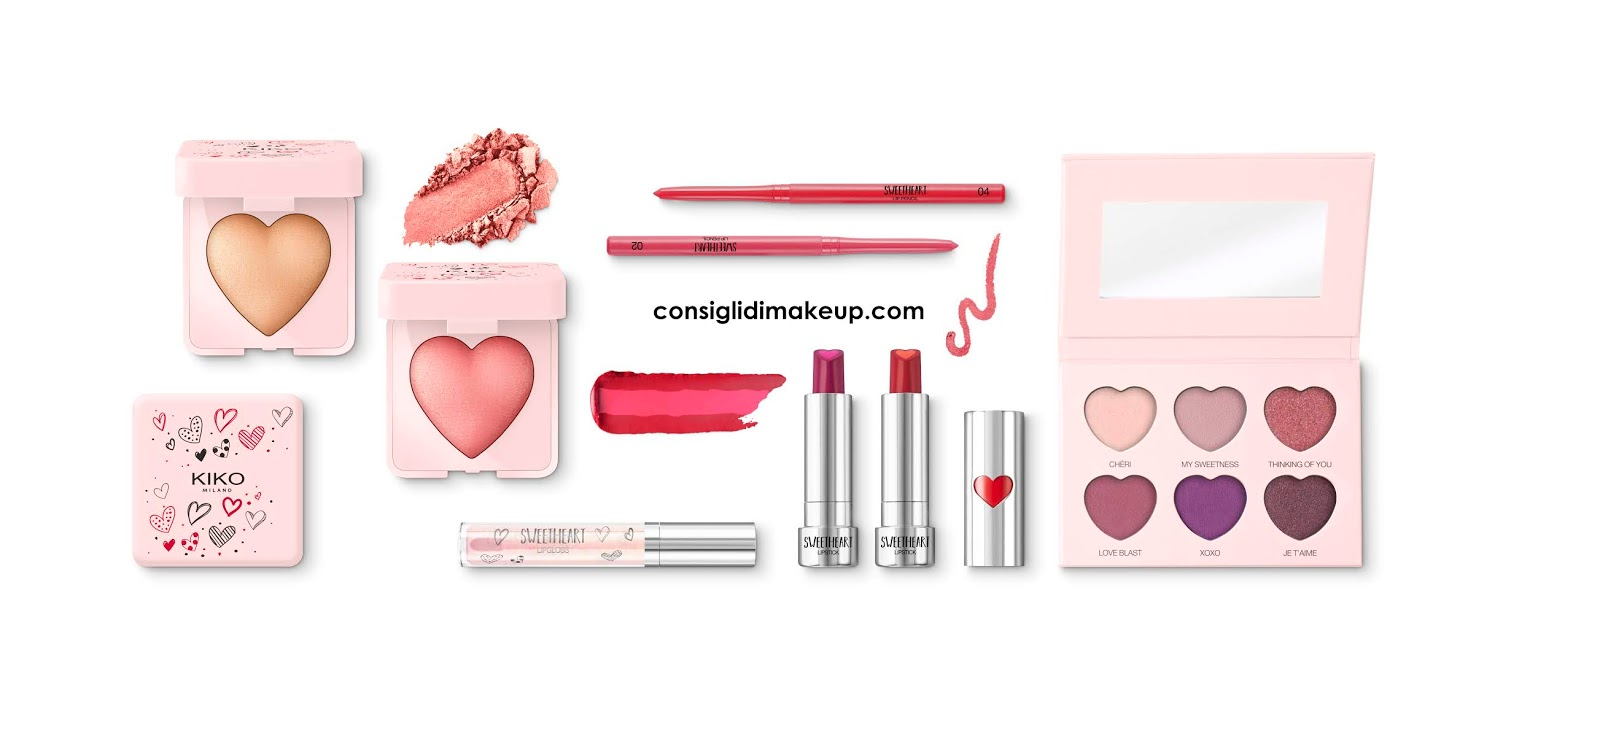 sweetheart collection kiko anteprima